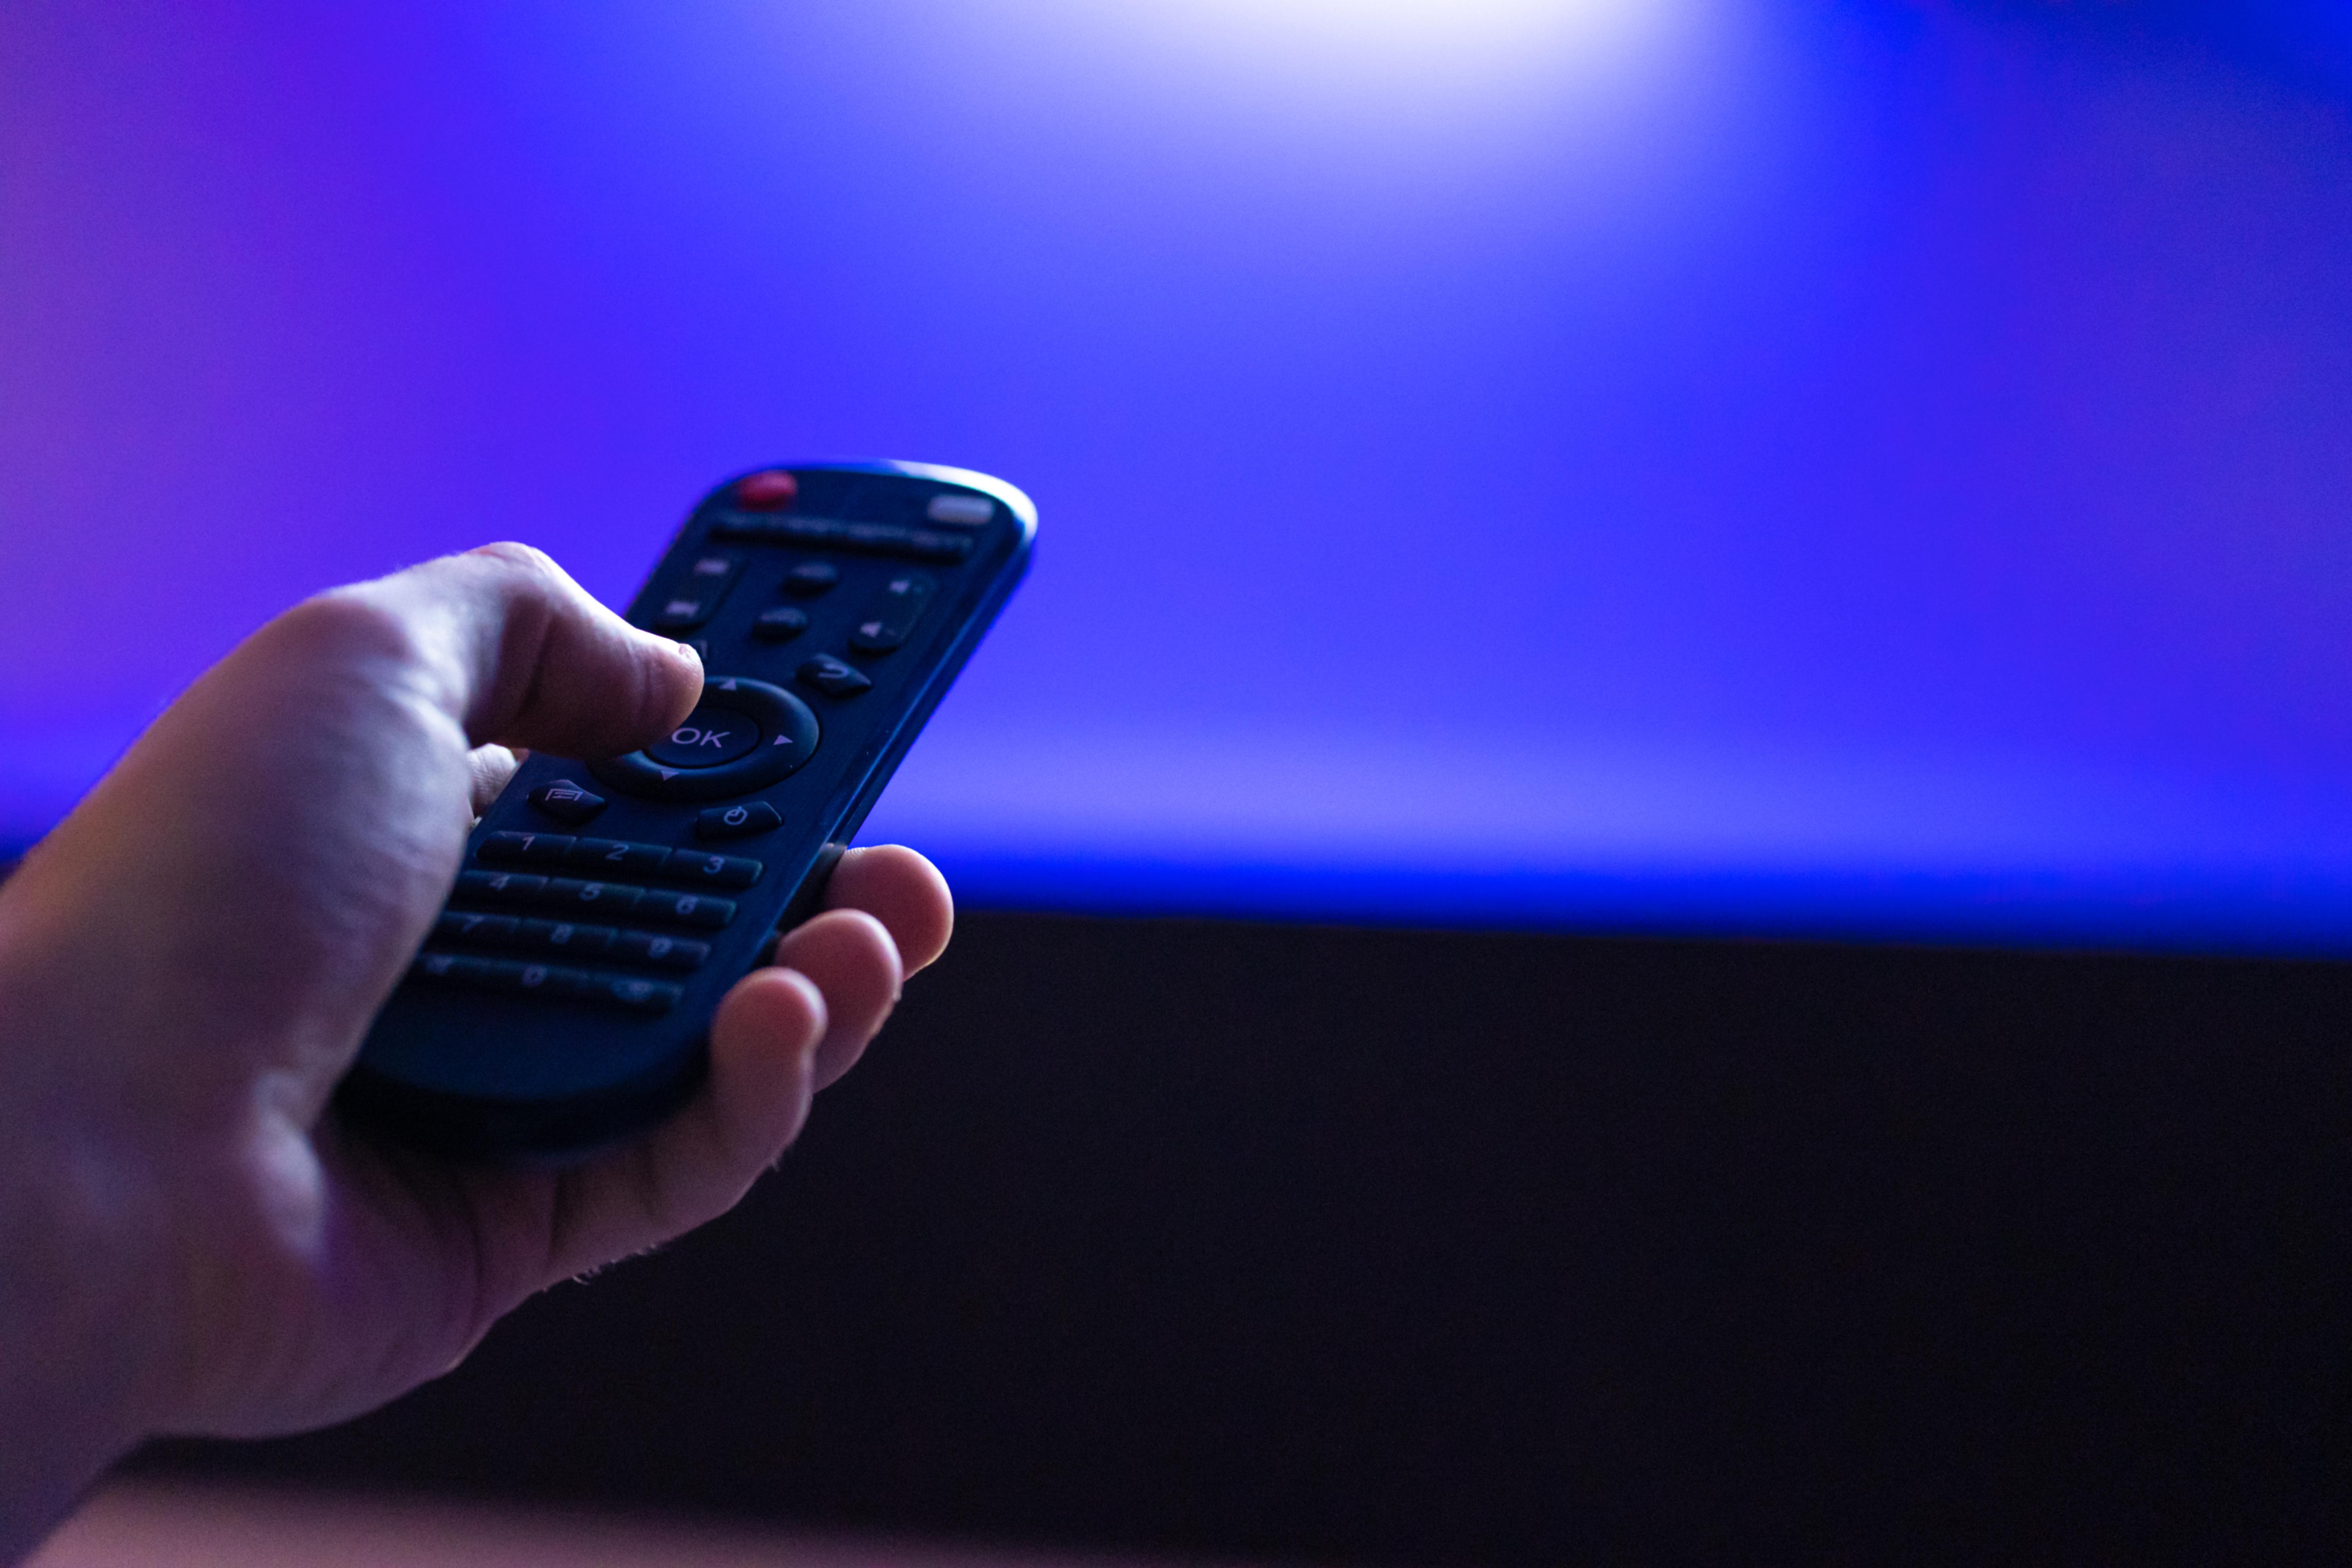 leisure at home. Watch TV. Remote control in hand close-up.